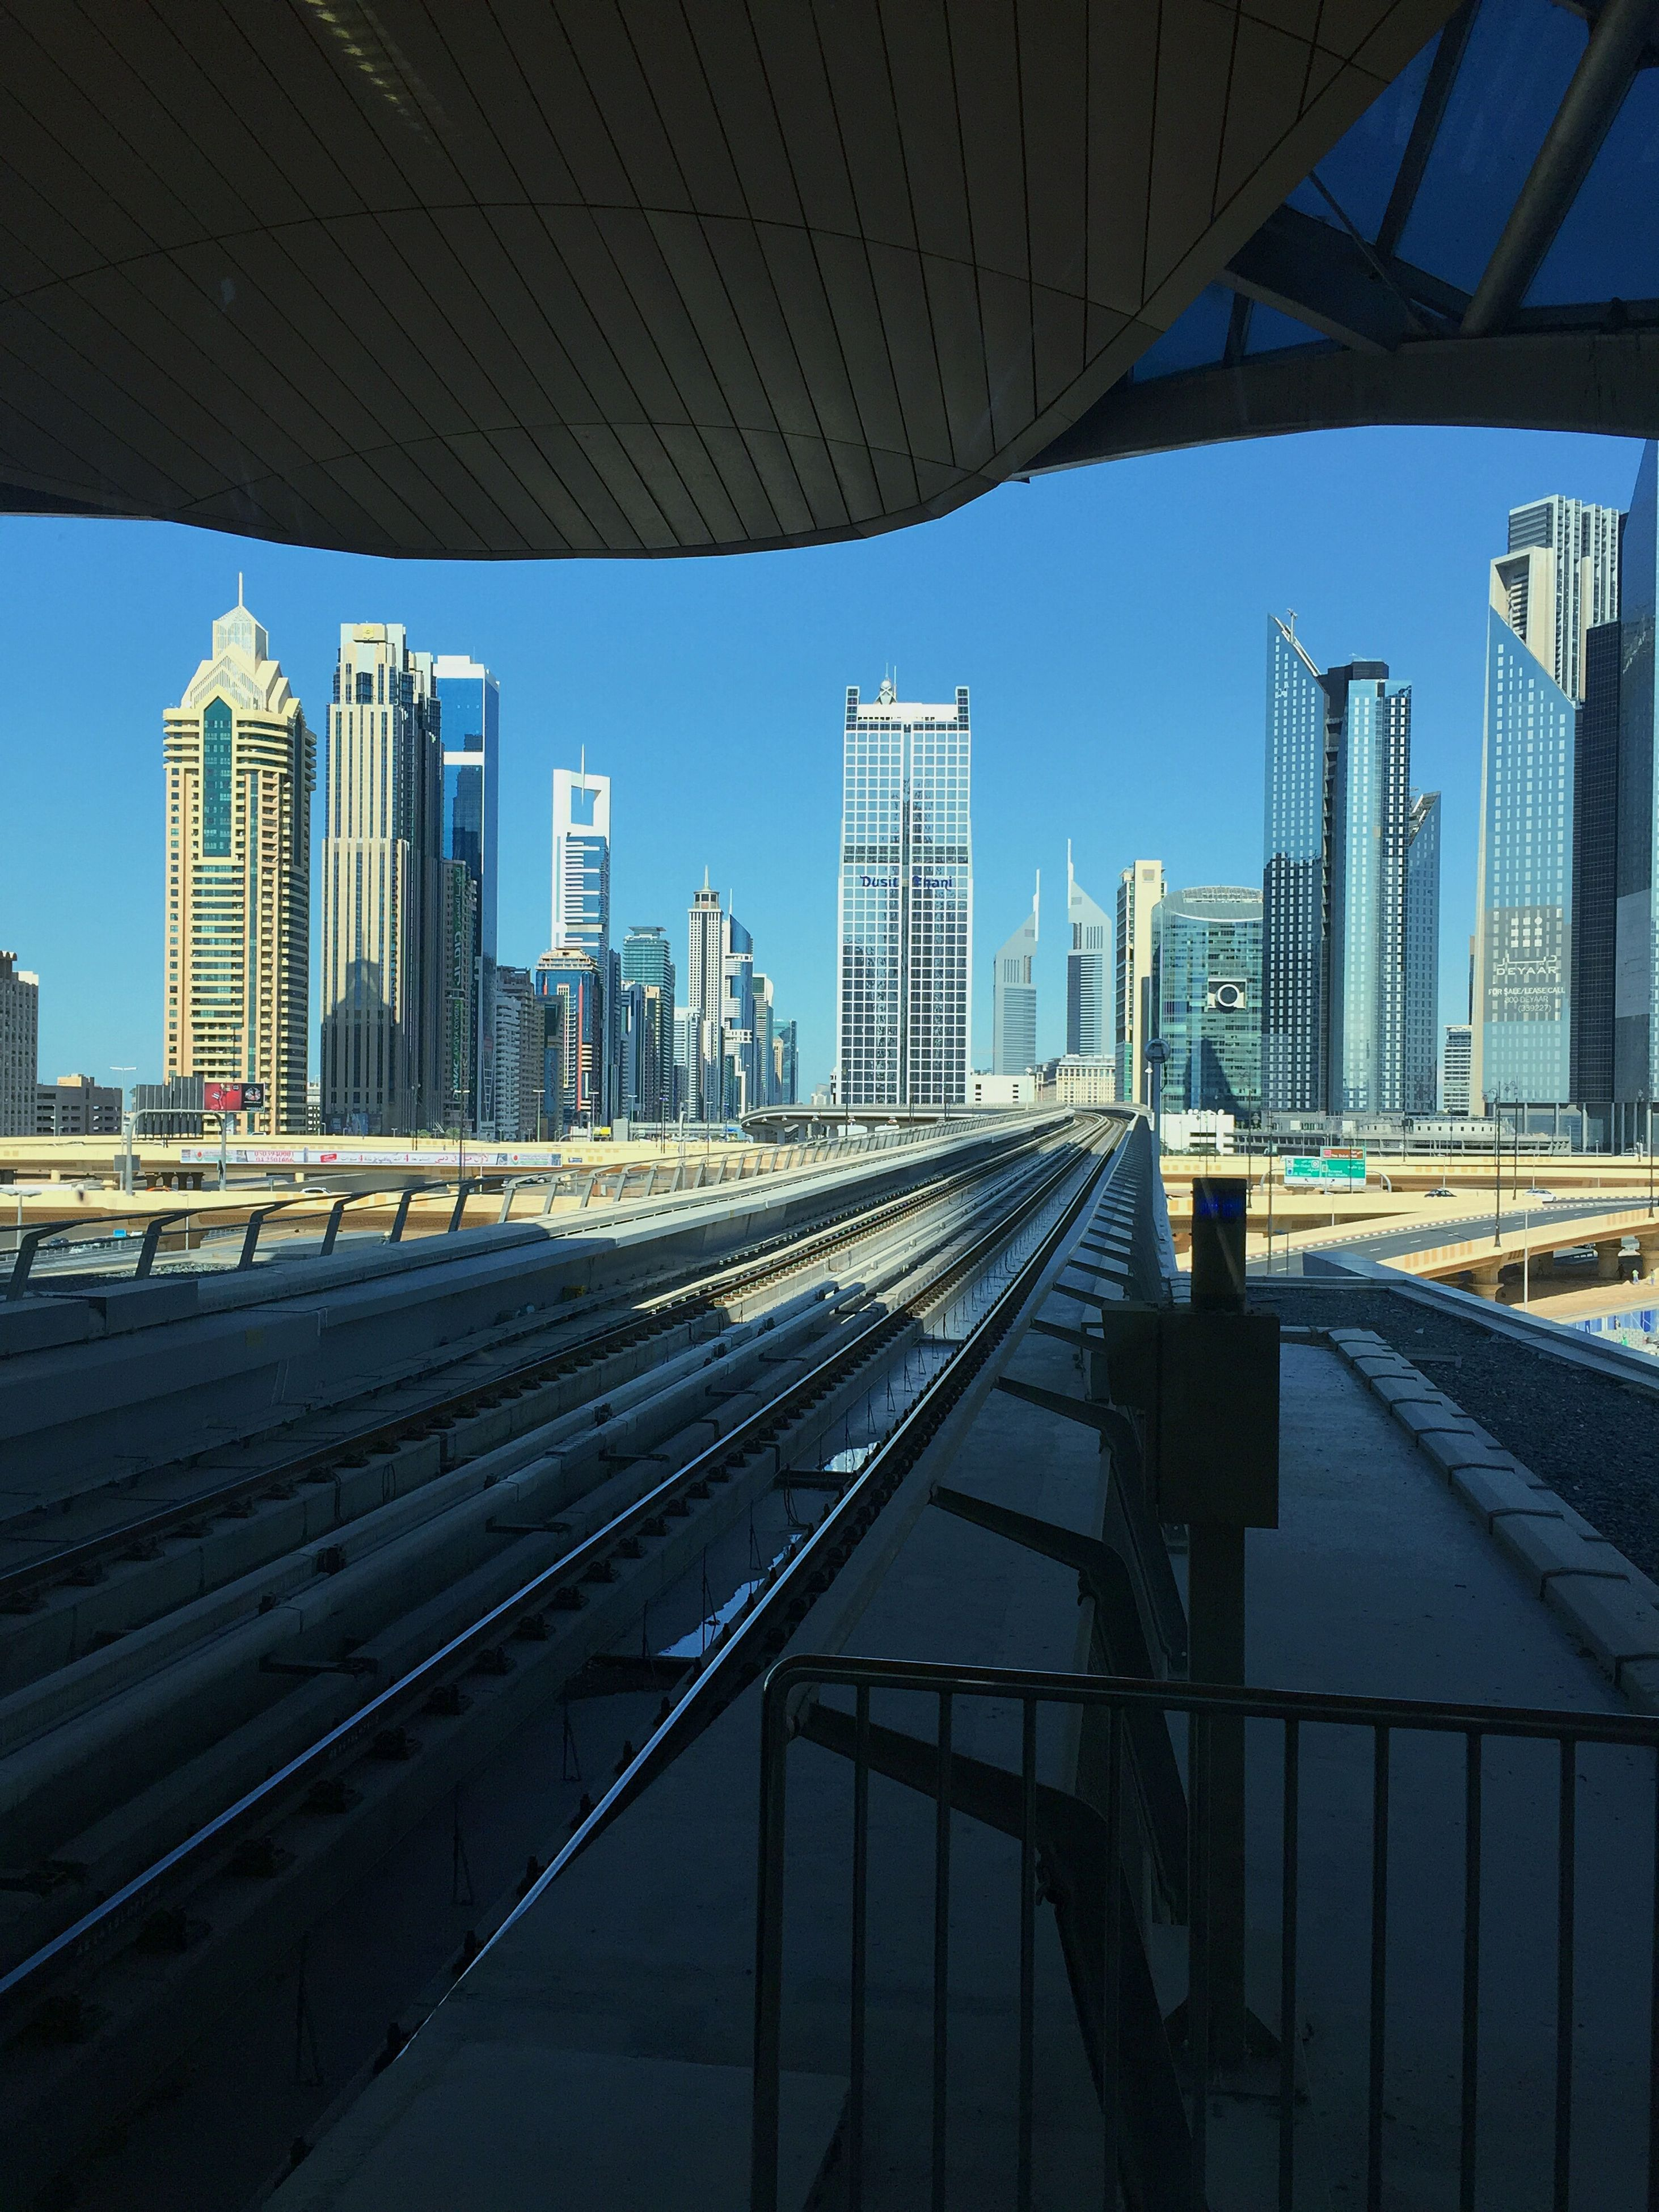 architecture, built structure, building exterior, transportation, railroad track, city, clear sky, the way forward, diminishing perspective, rail transportation, public transportation, blue, railroad station platform, modern, skyscraper, vanishing point, sky, railroad station, office building, day